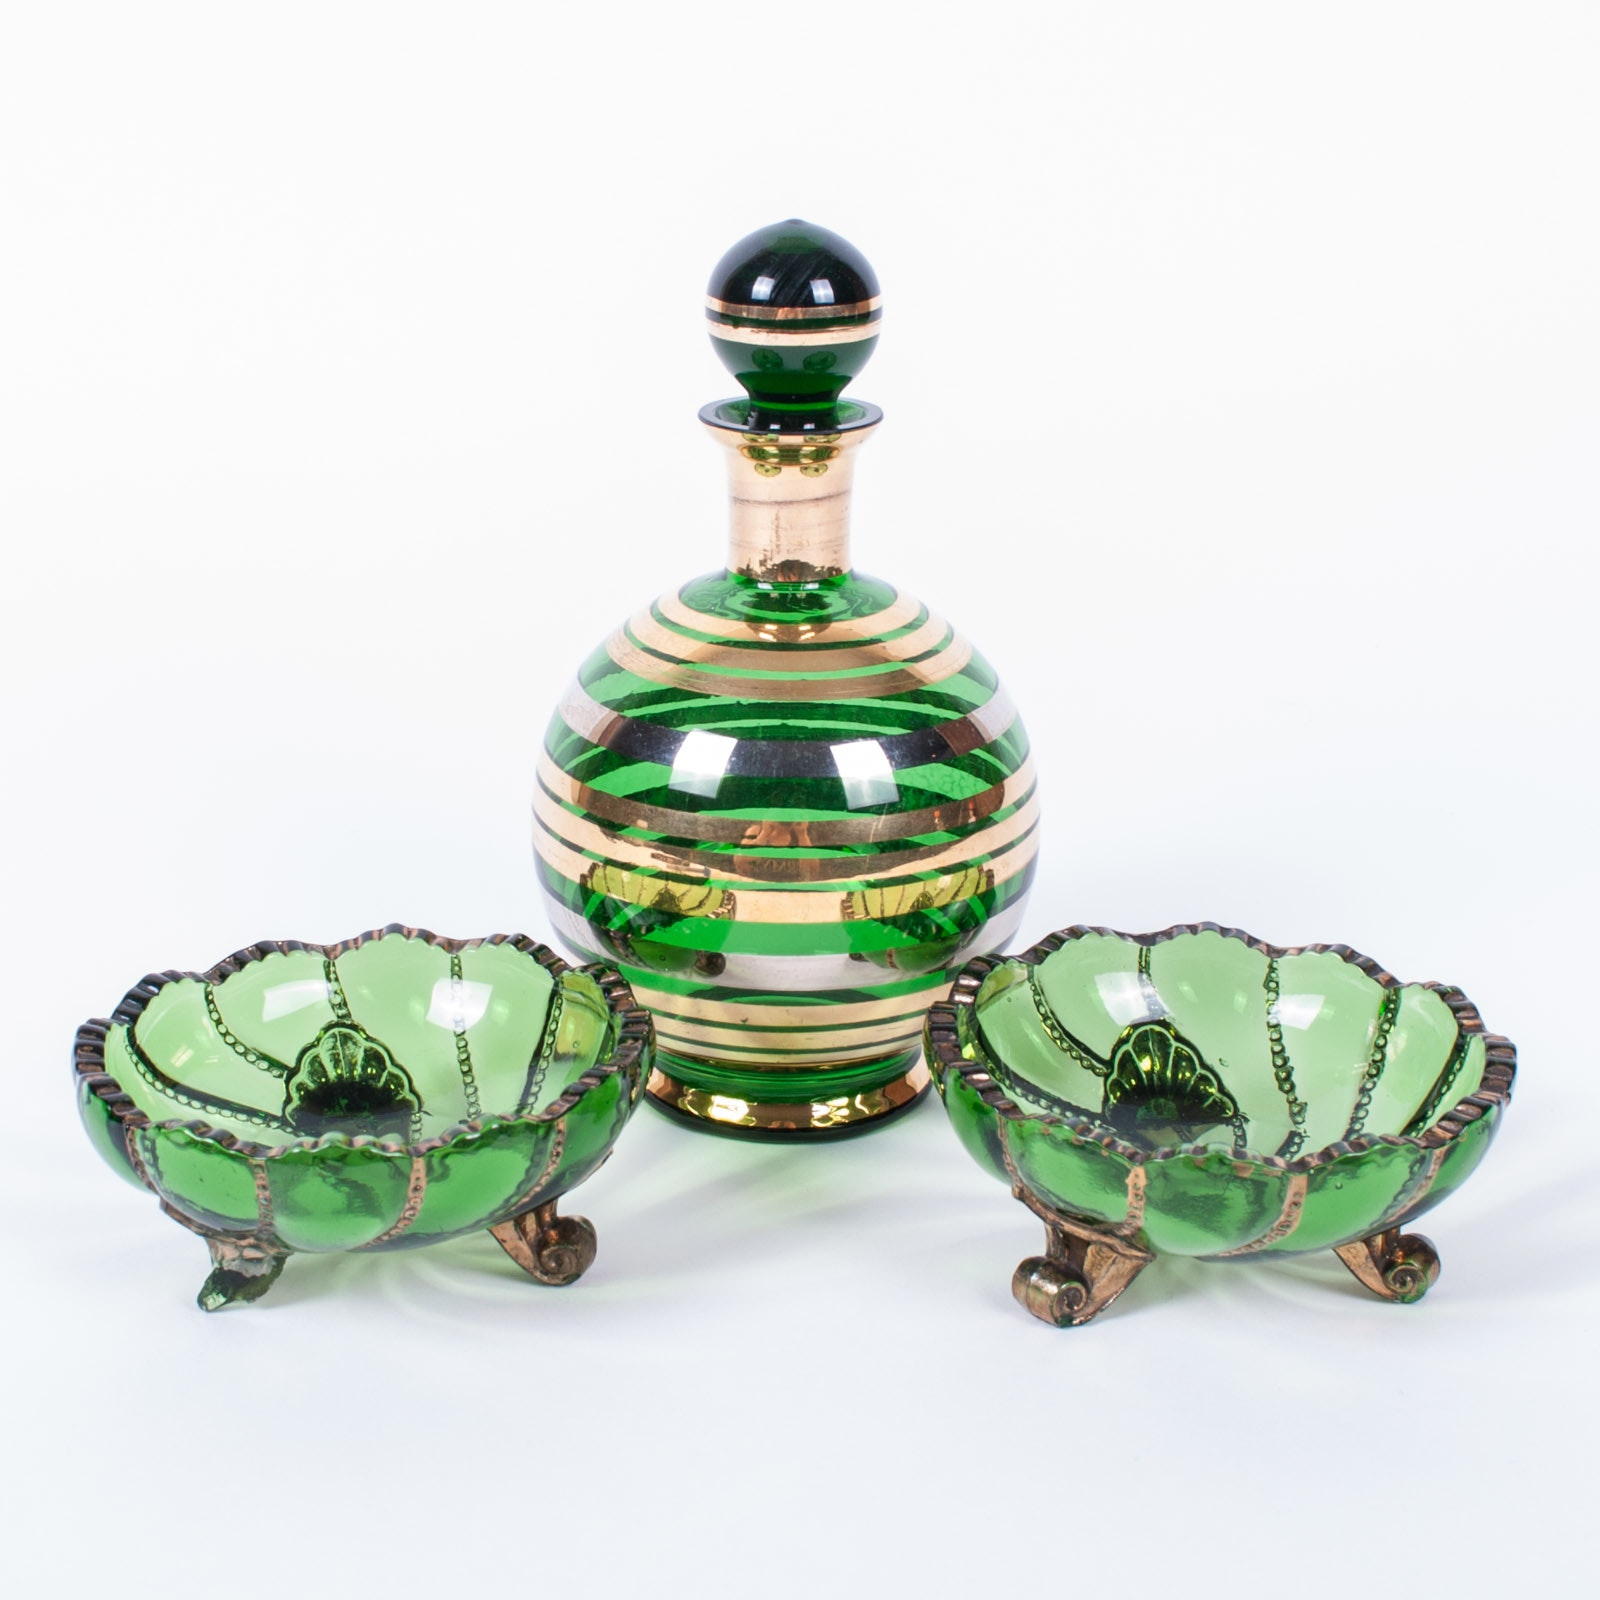 Vintage Green and Gold Glass Dishes with Decanter